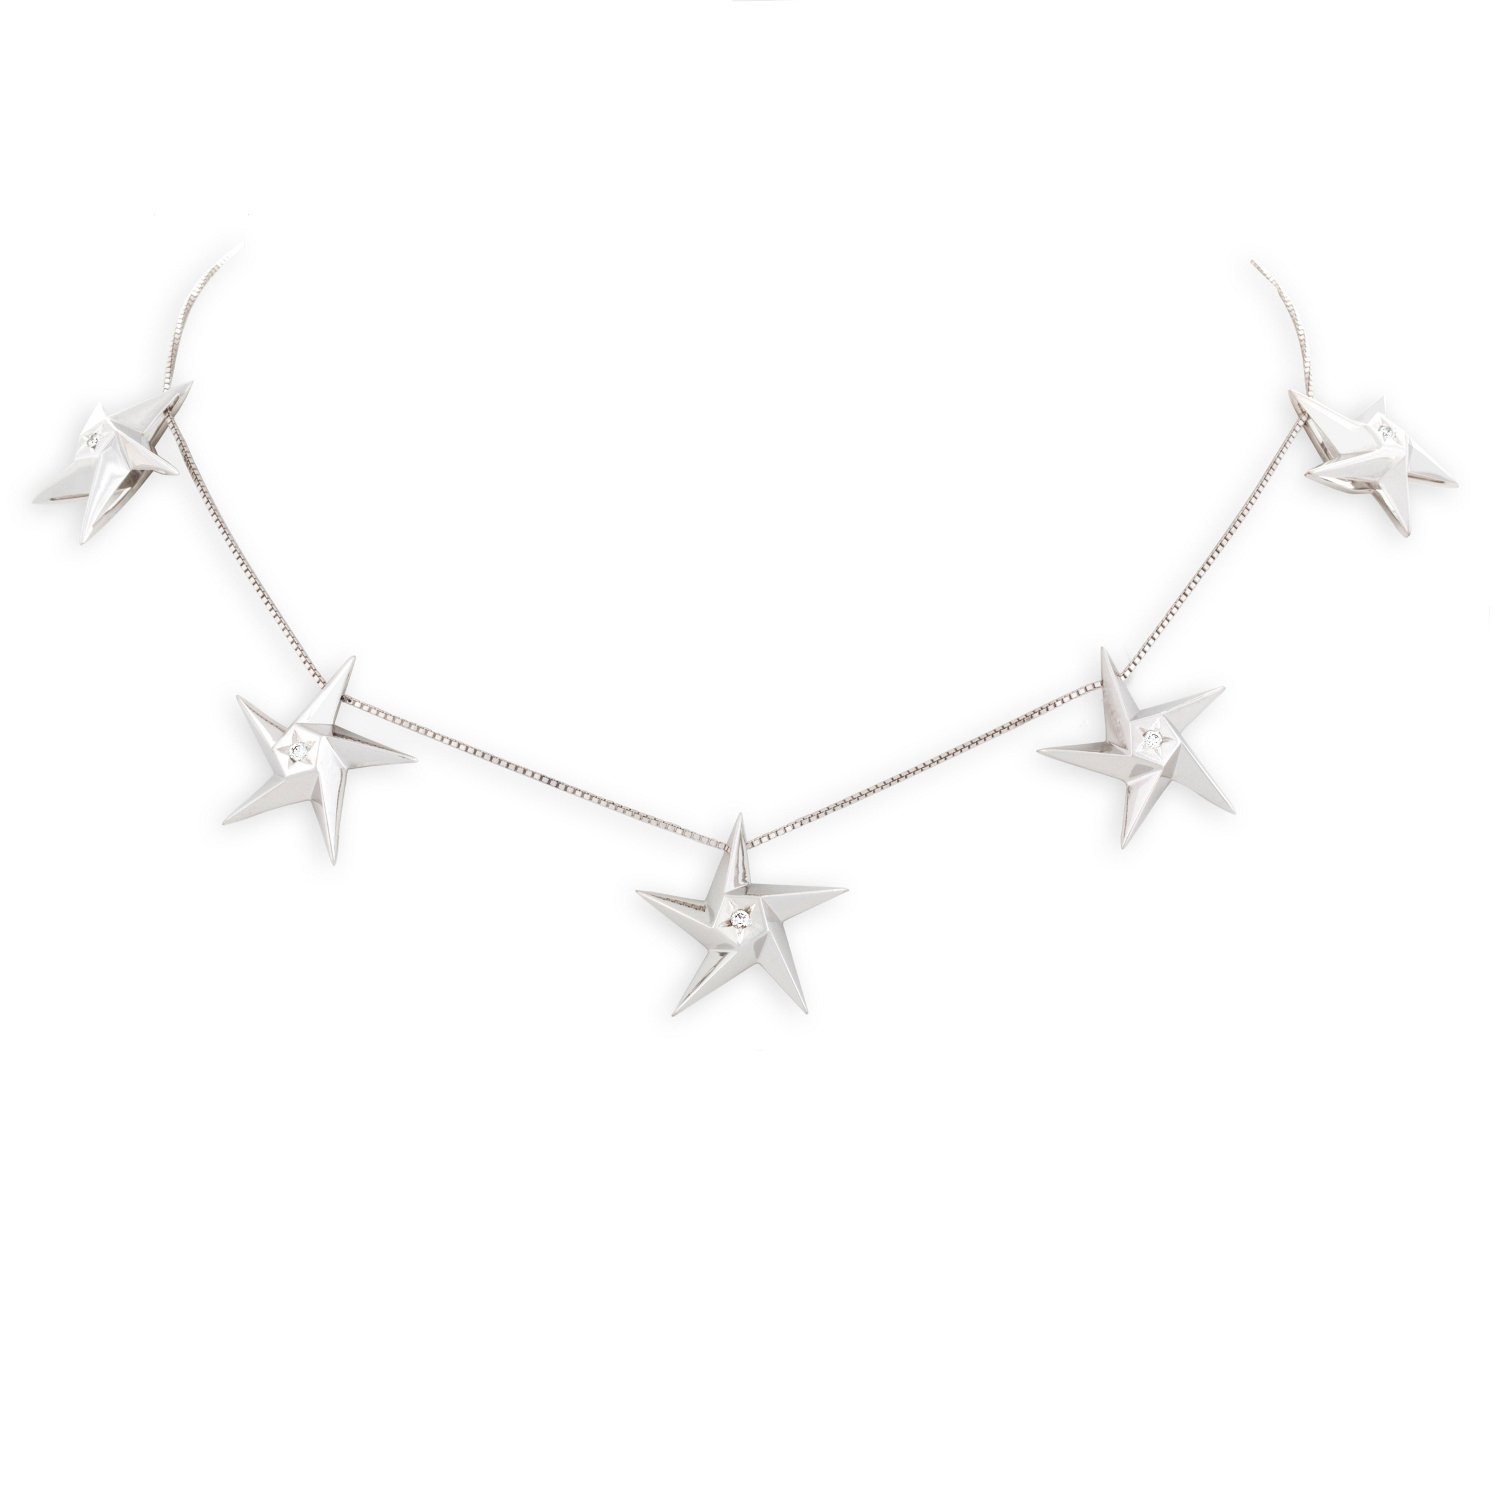 point jewellery splendour london of open star necklace links sterling hires silver en gb four